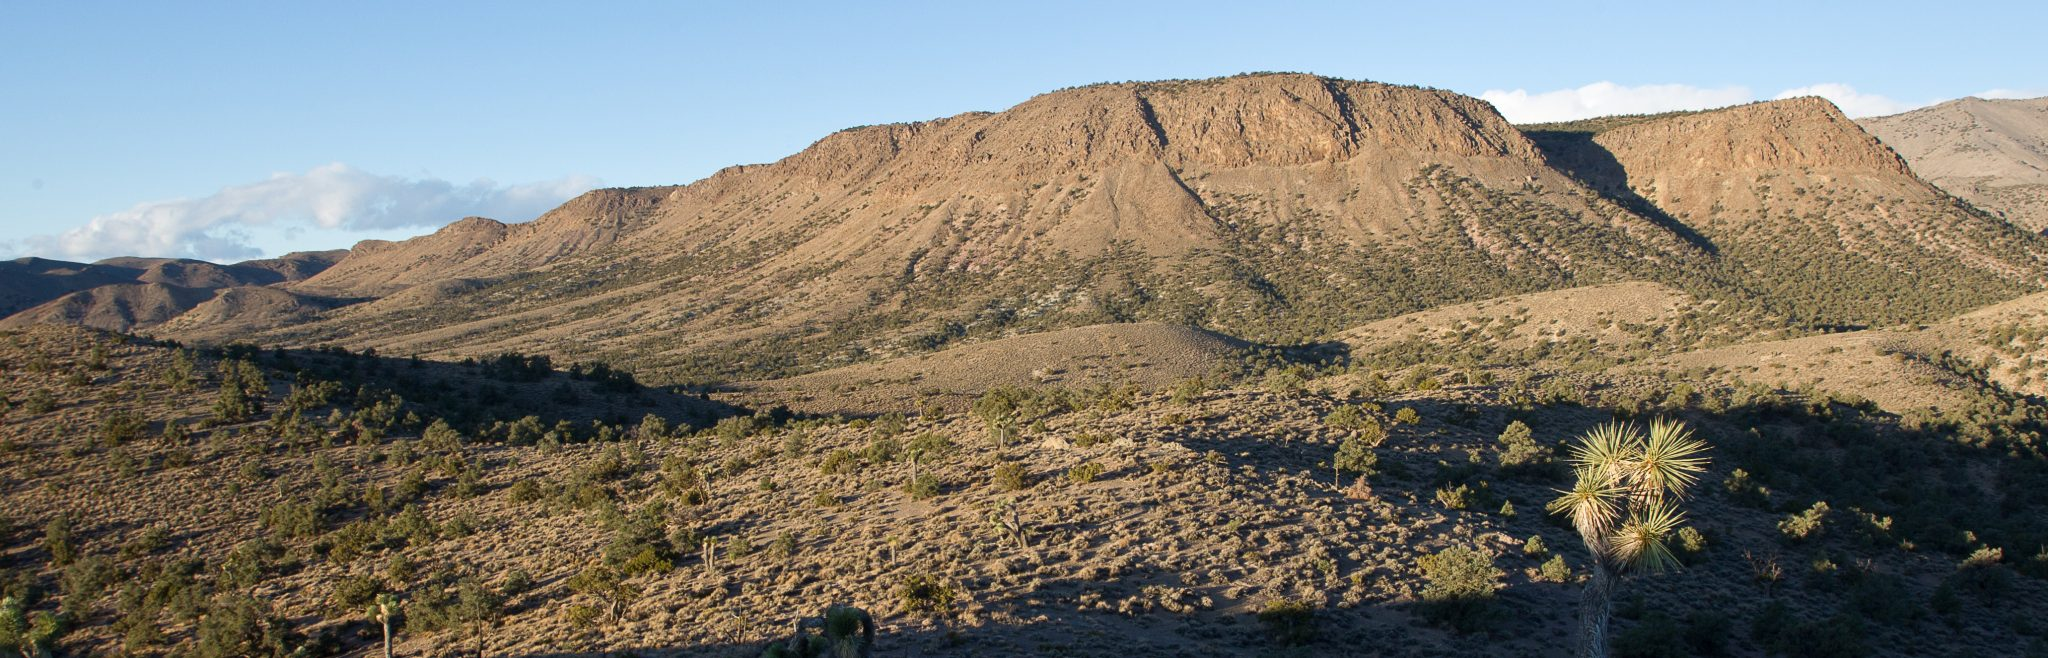 conglomerate mesa from East